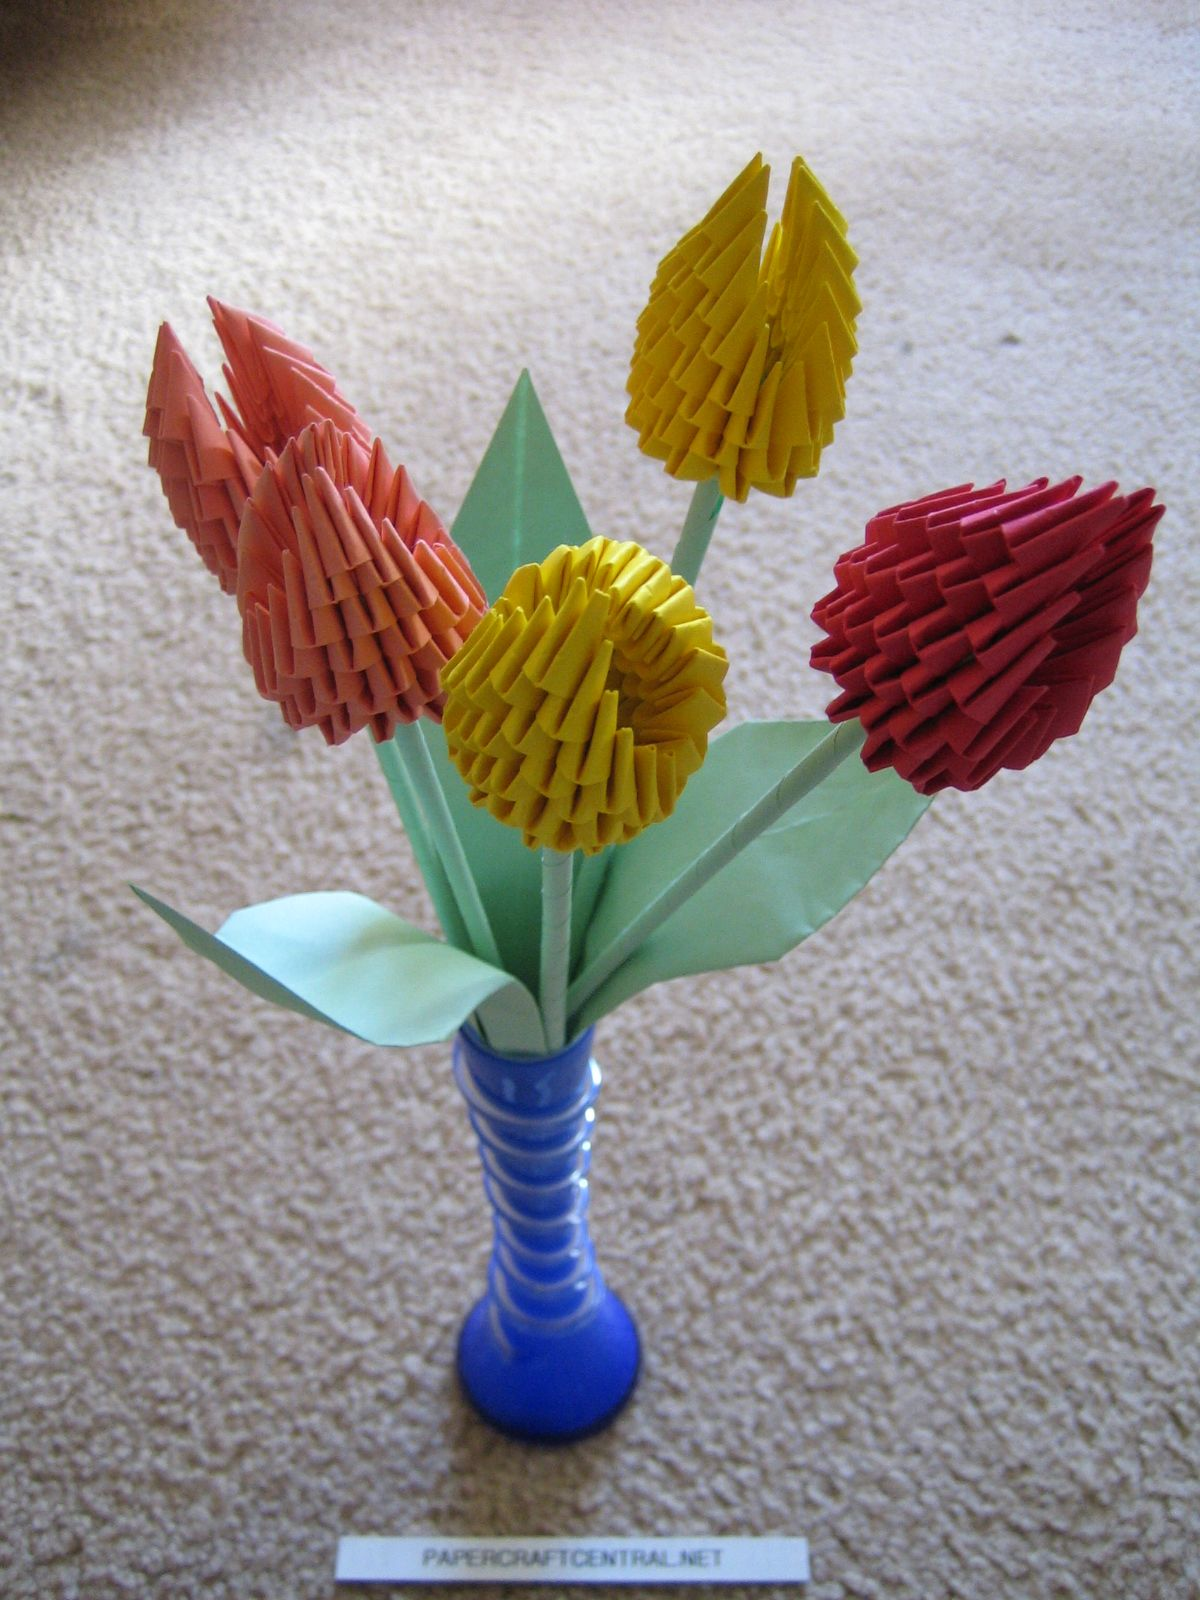 3D Origami - Tulip Bulbs | Might Actually Make This ... - photo#23